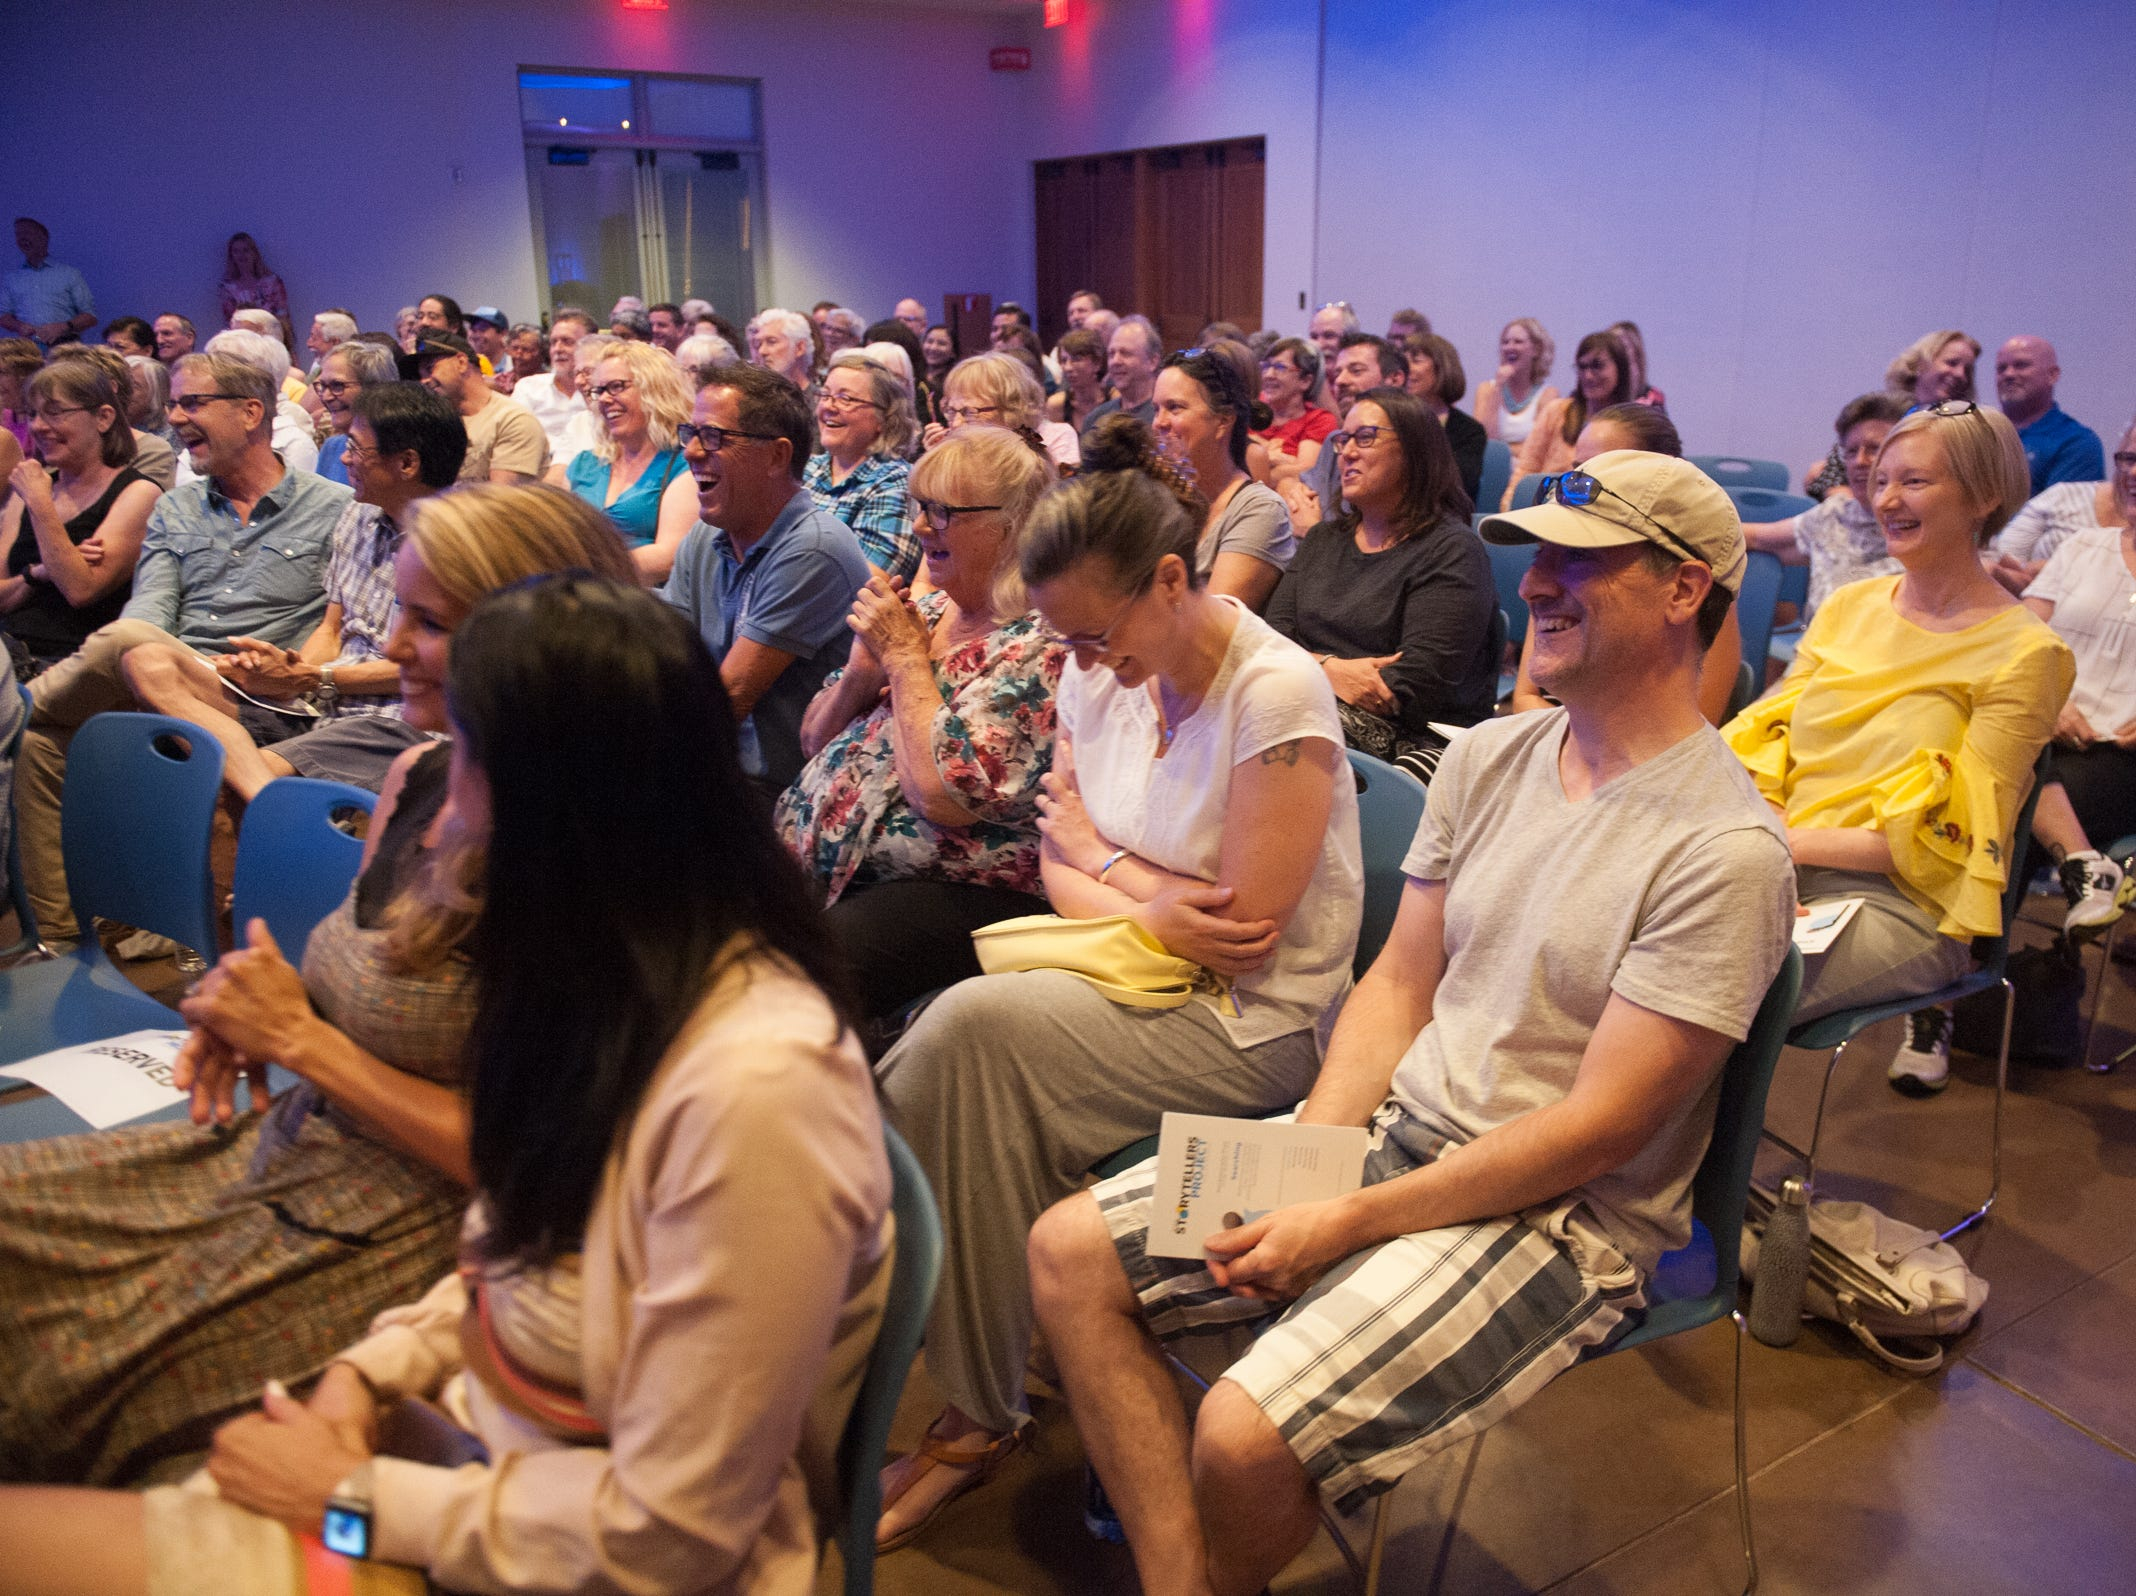 The room fills with laughter during Arizona Storytellers Project presents Searching at the Desert Botanical Garden in Phoenix on Thursday, Sep. 13, 2018.